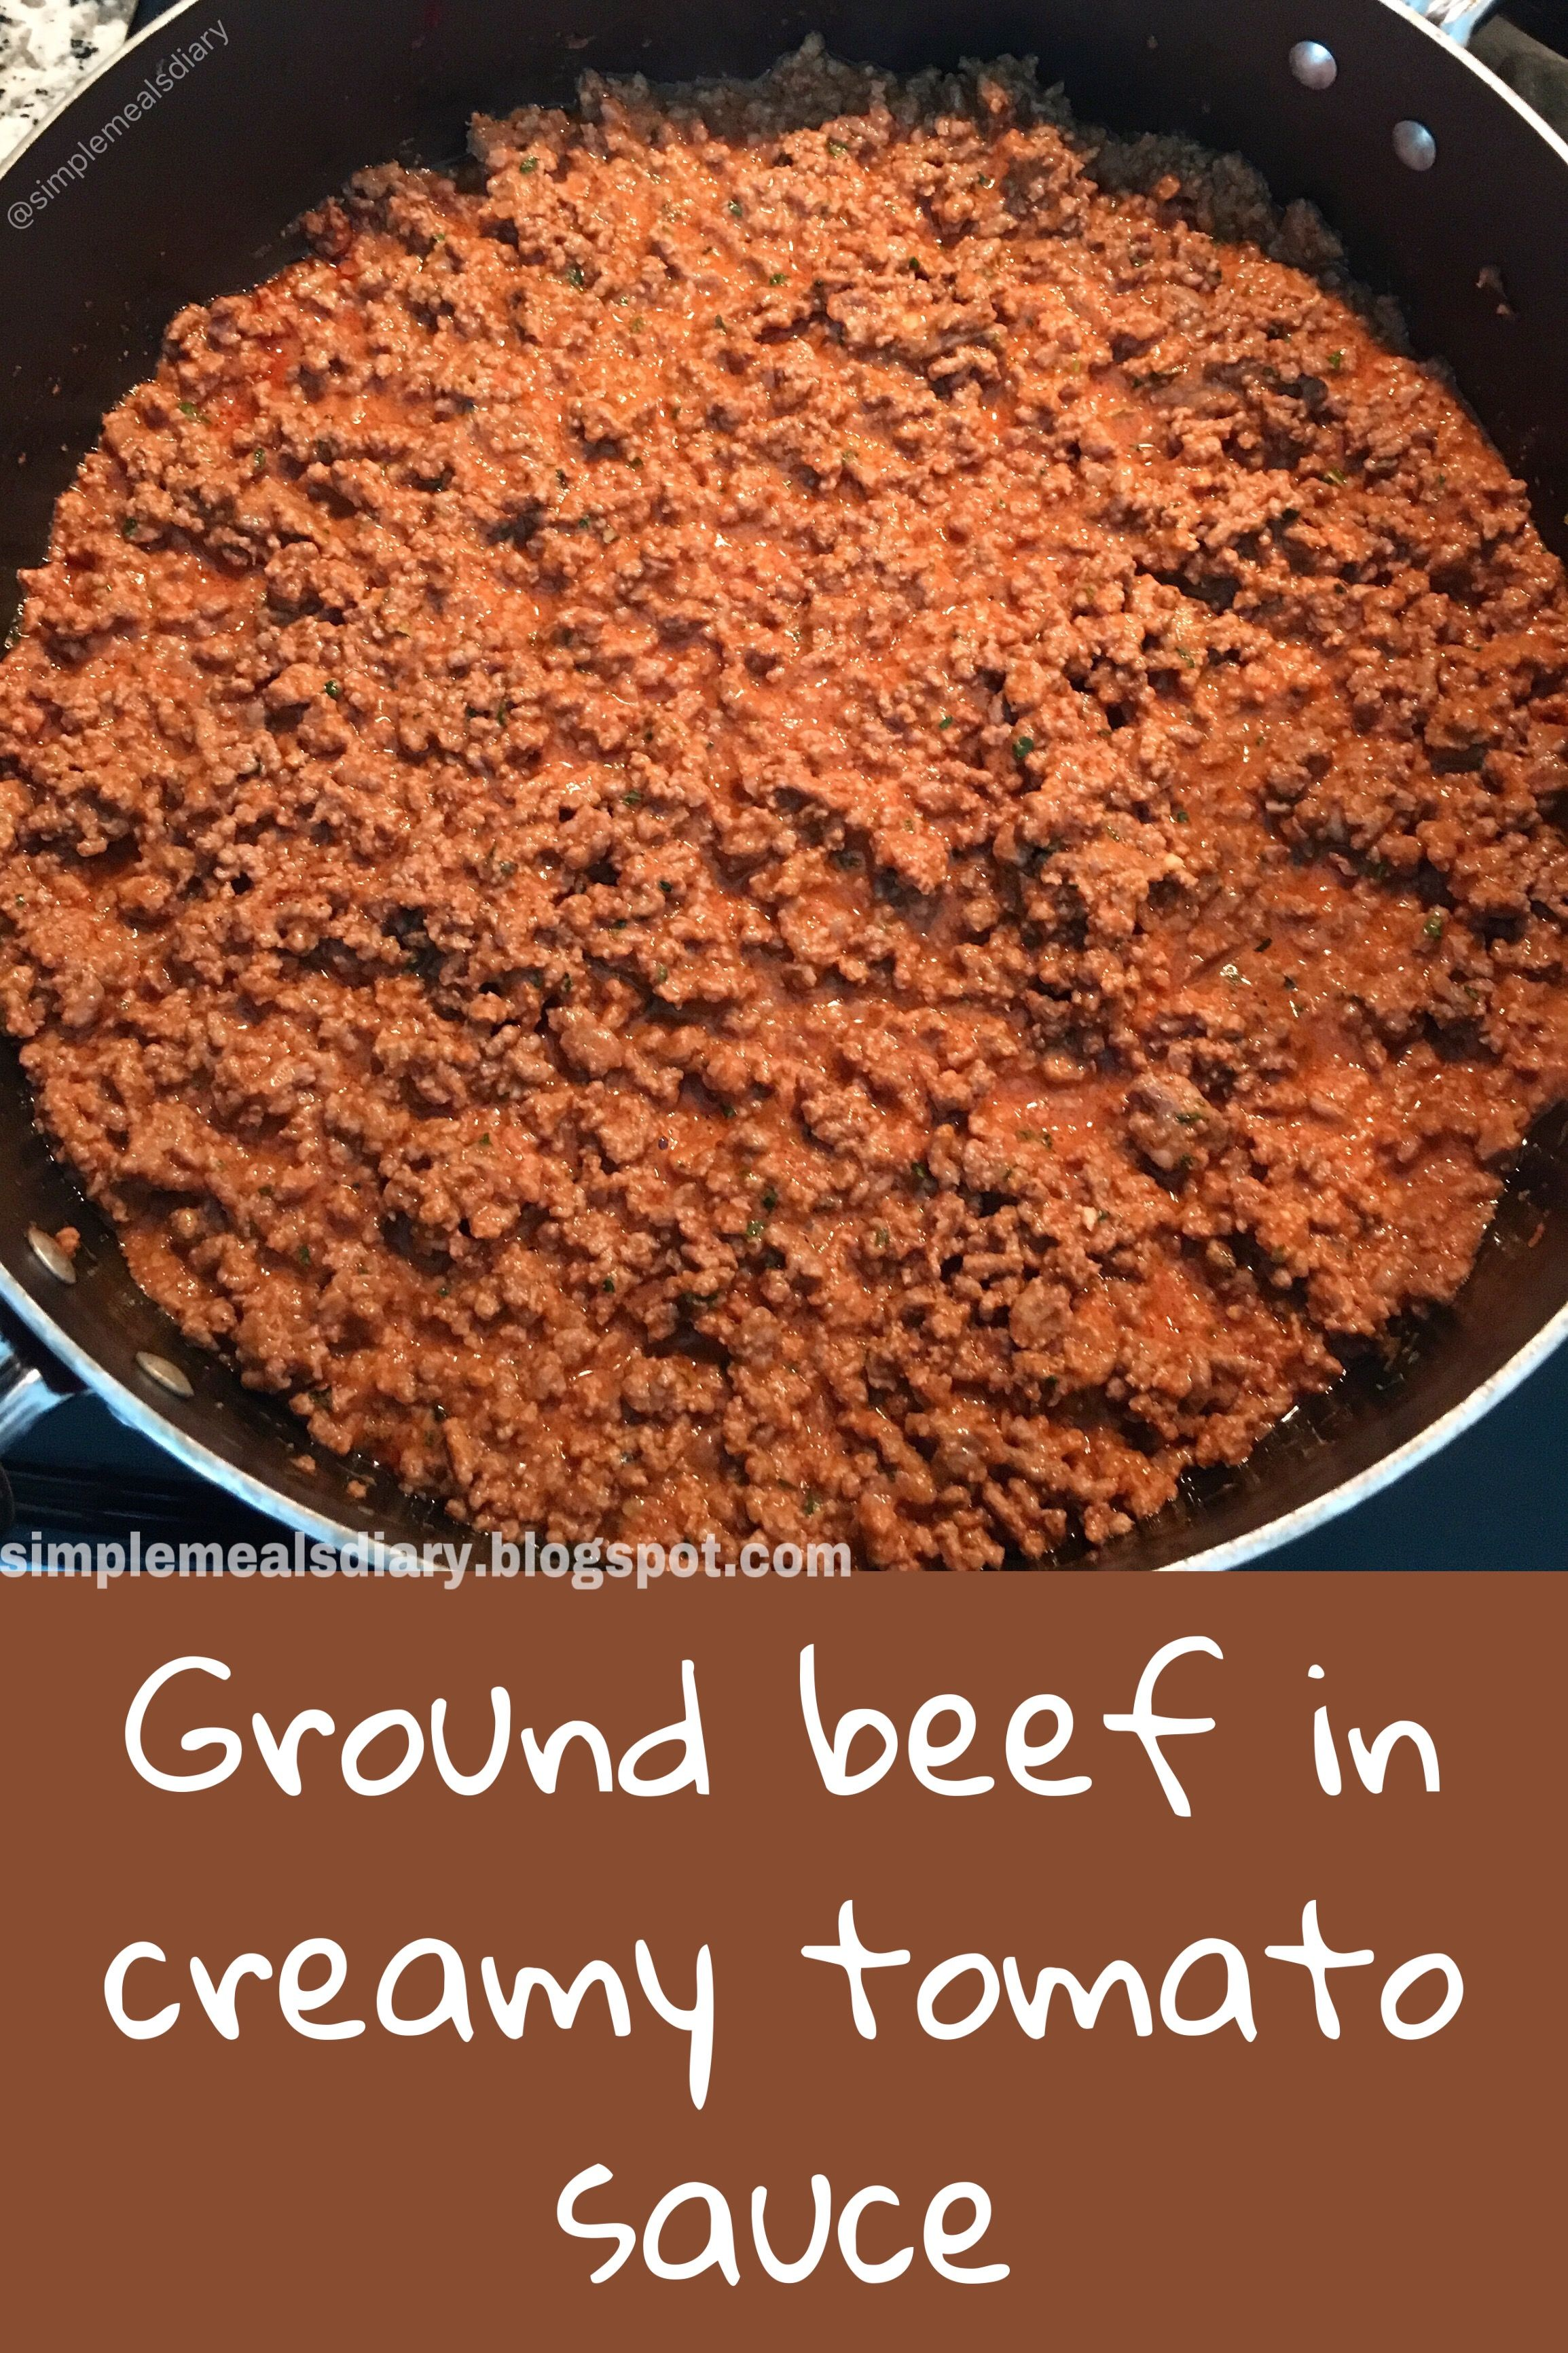 Ground Beef In Creamy Tomato Sauce Recipe Tomato Sauce Recipe Tomato Sauce Creamy Tomato Sauce